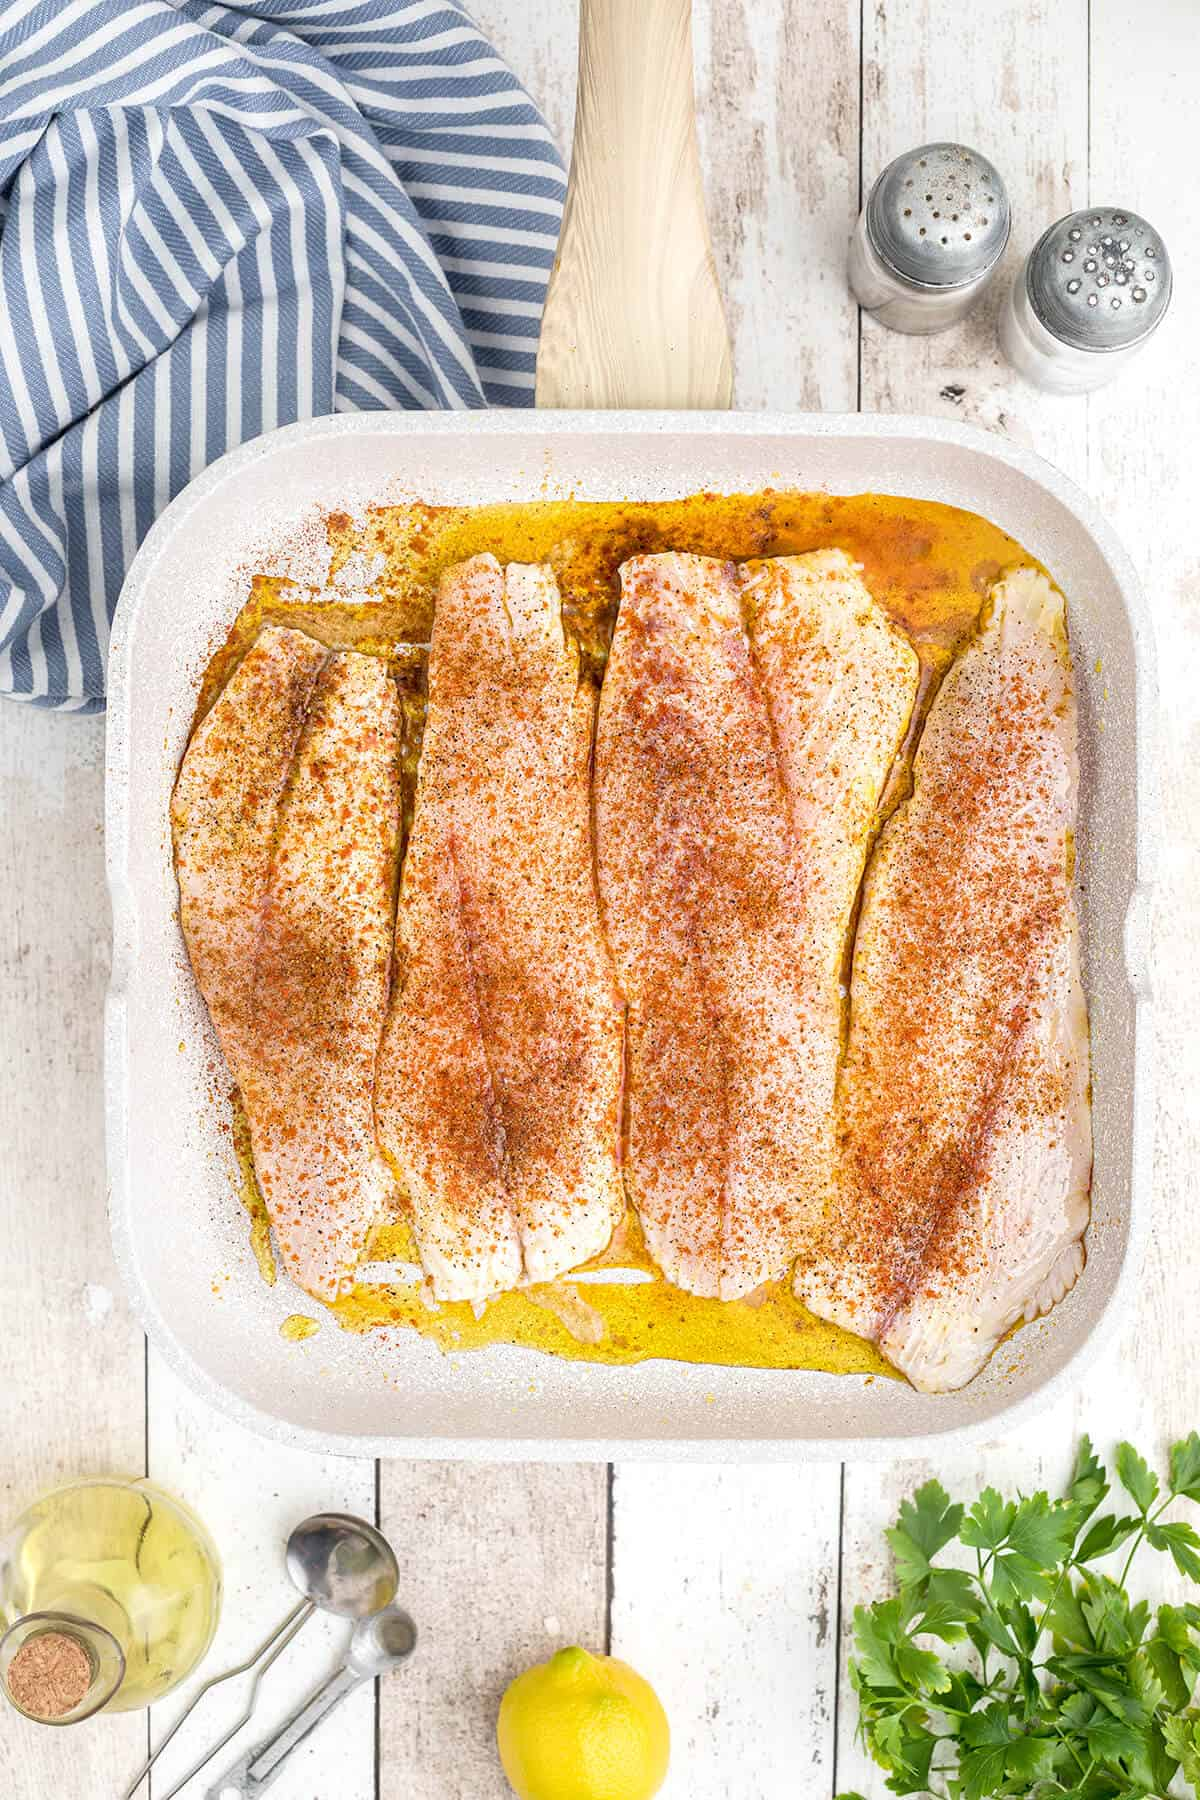 Fish fillets with seasoning applied on a grill pan.